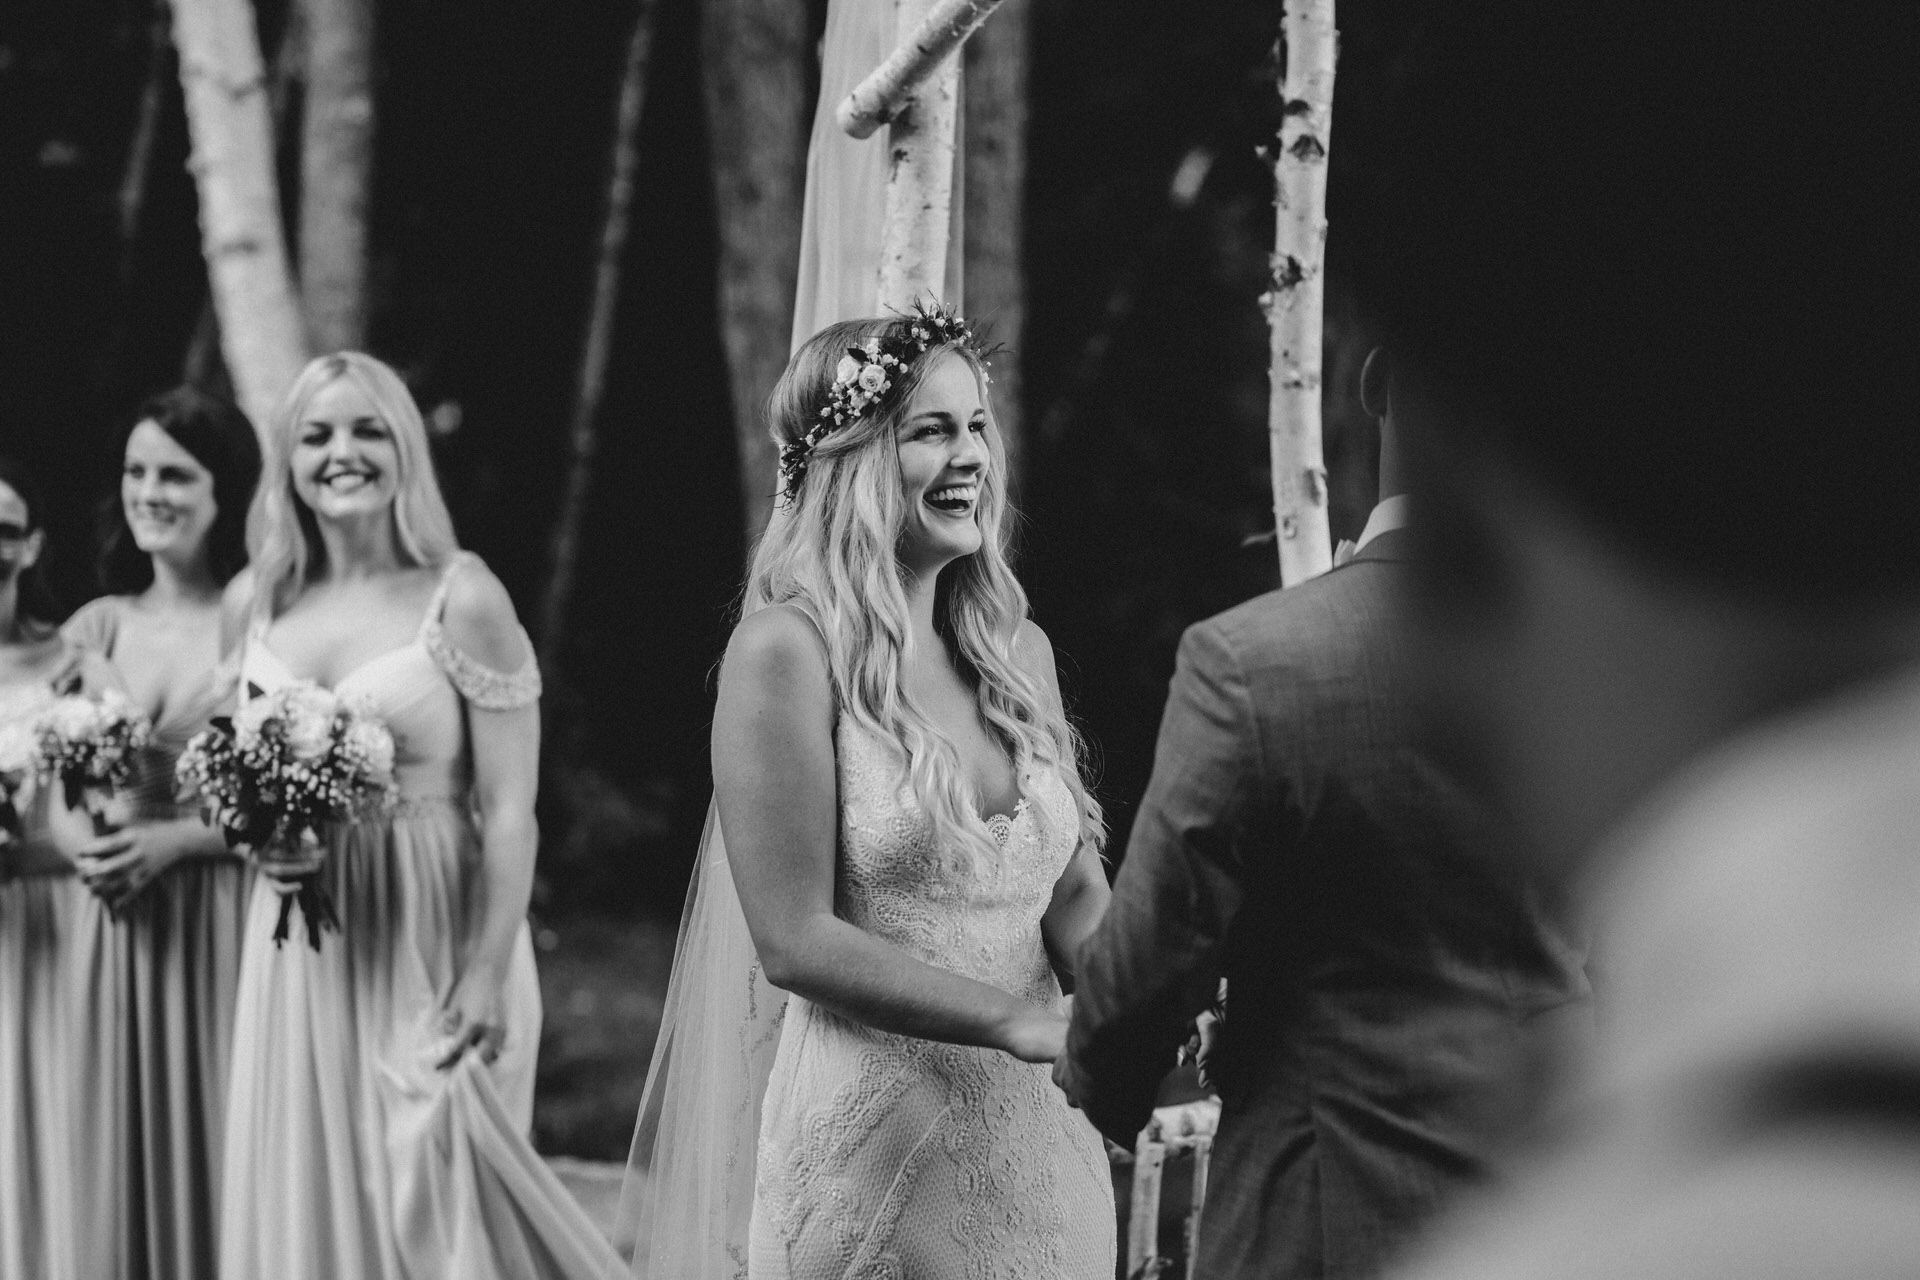 Muskoka Wedding - big laughs at the alter